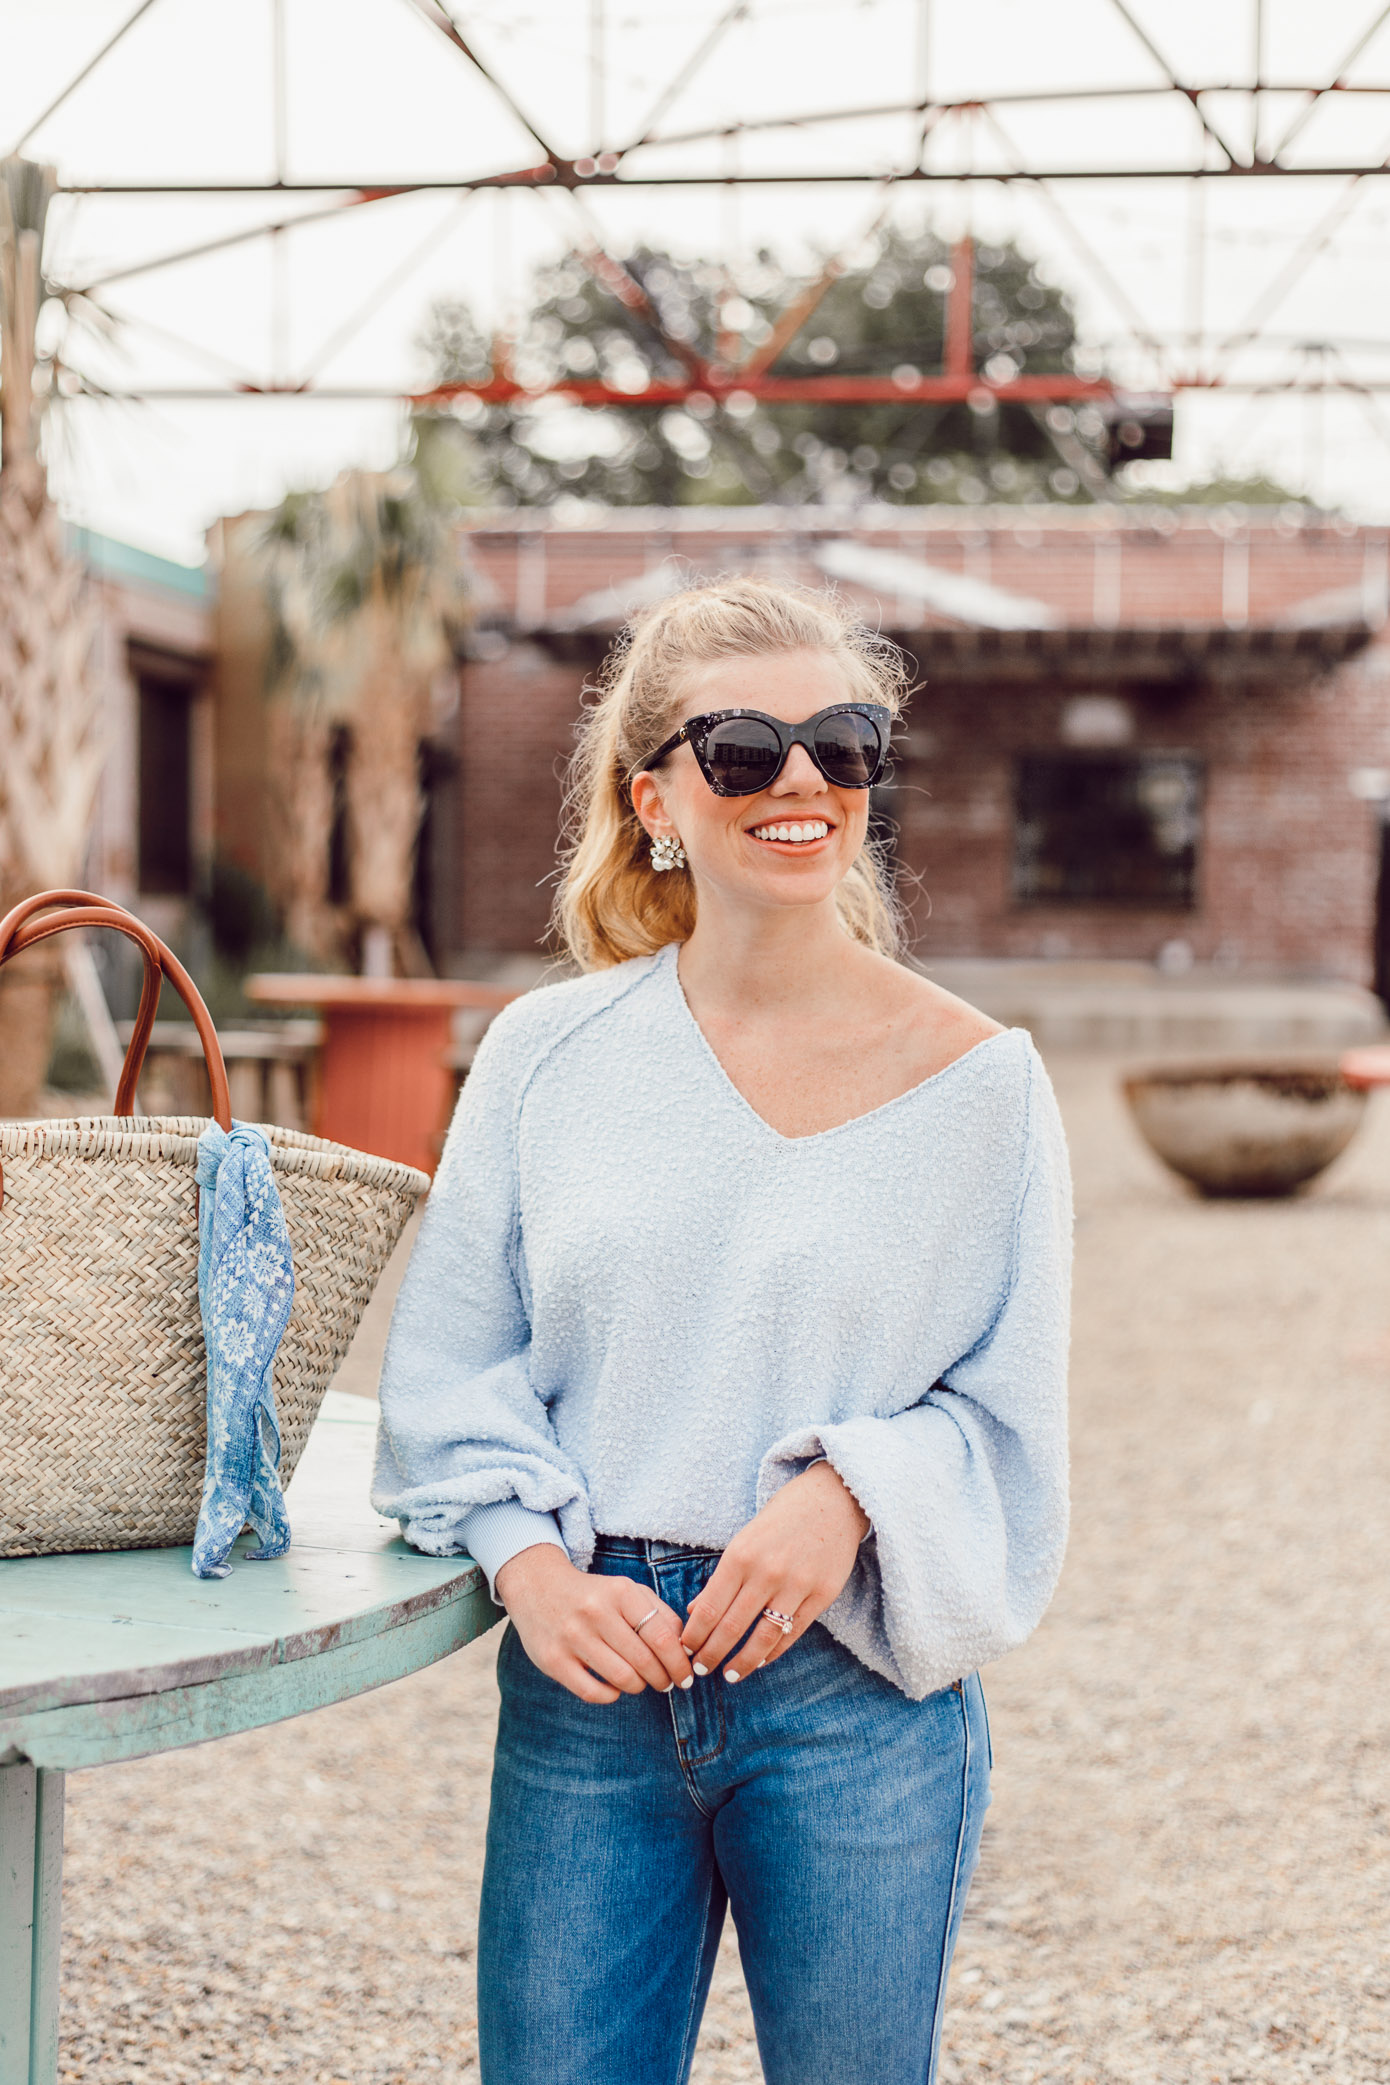 Summer Everyday Casual | Free People Found My Friend Sweater styled on Louella Reese